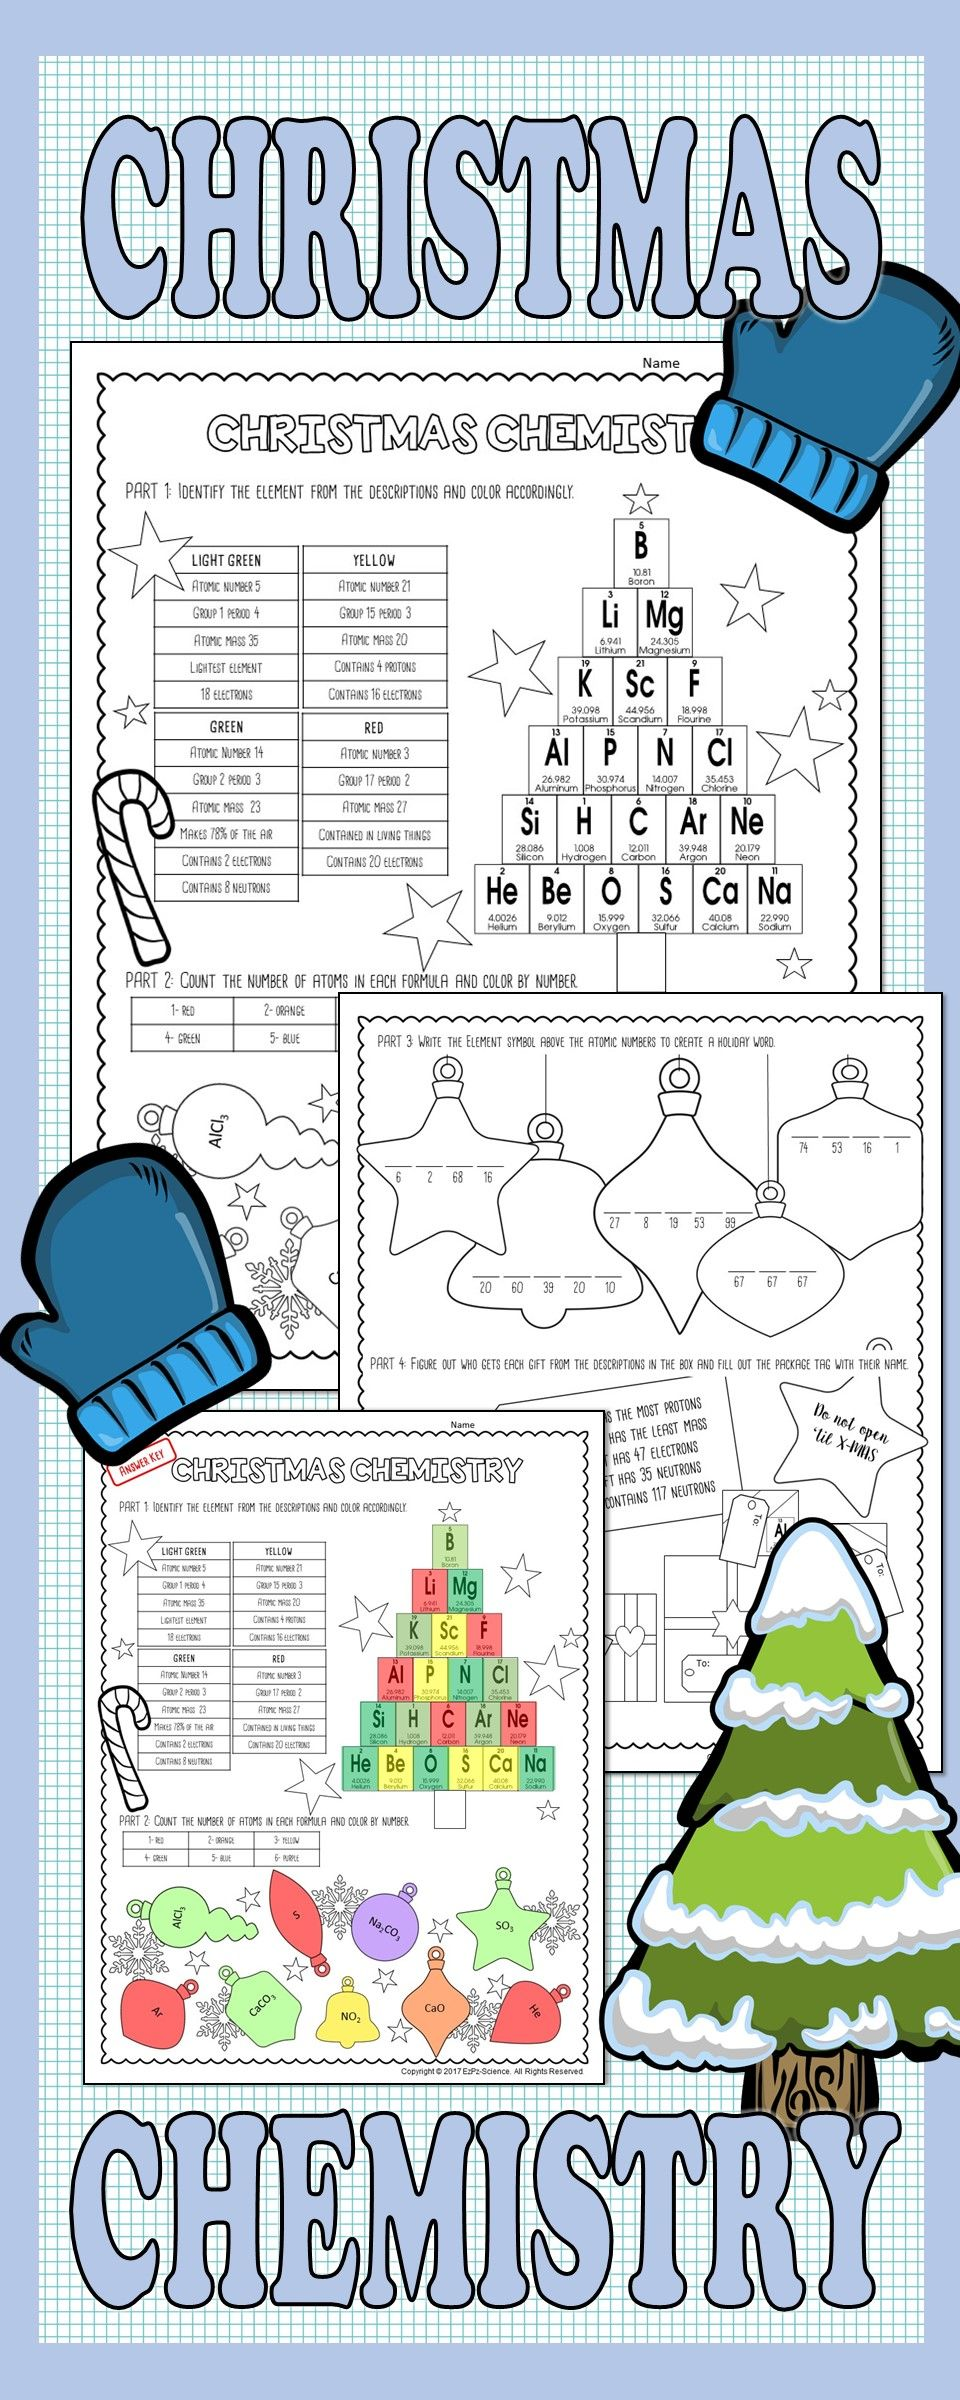 Christmas Chemistry Periodic Table Activities And Students